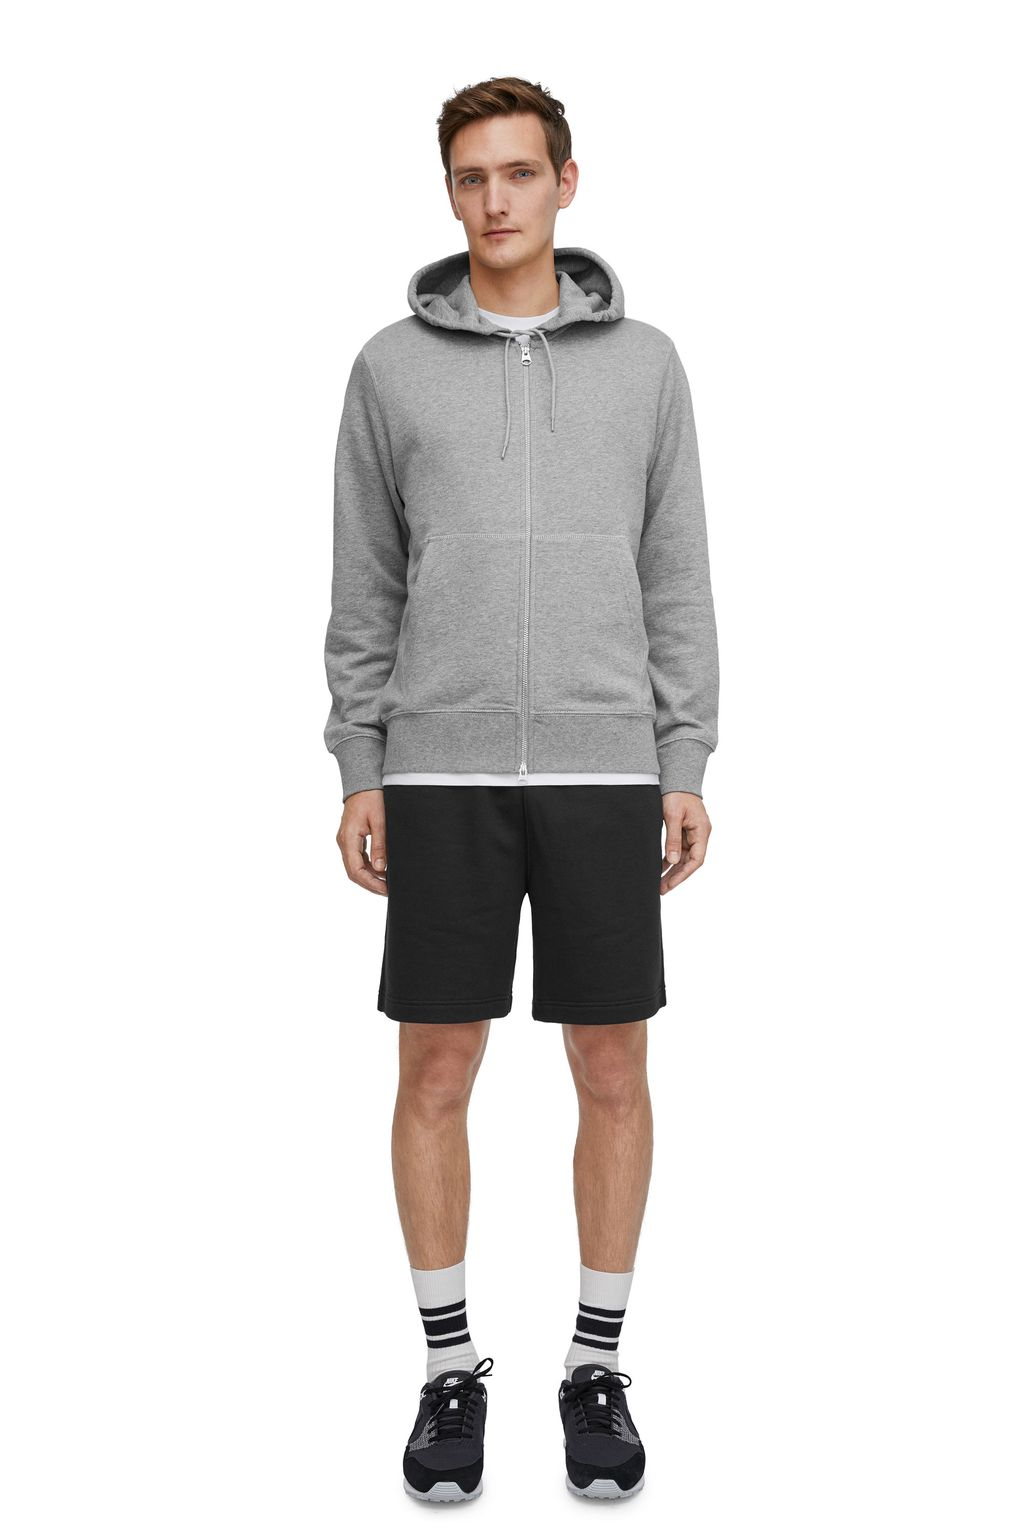 9a52ac419d French Terry Zip Hoodie - Arket